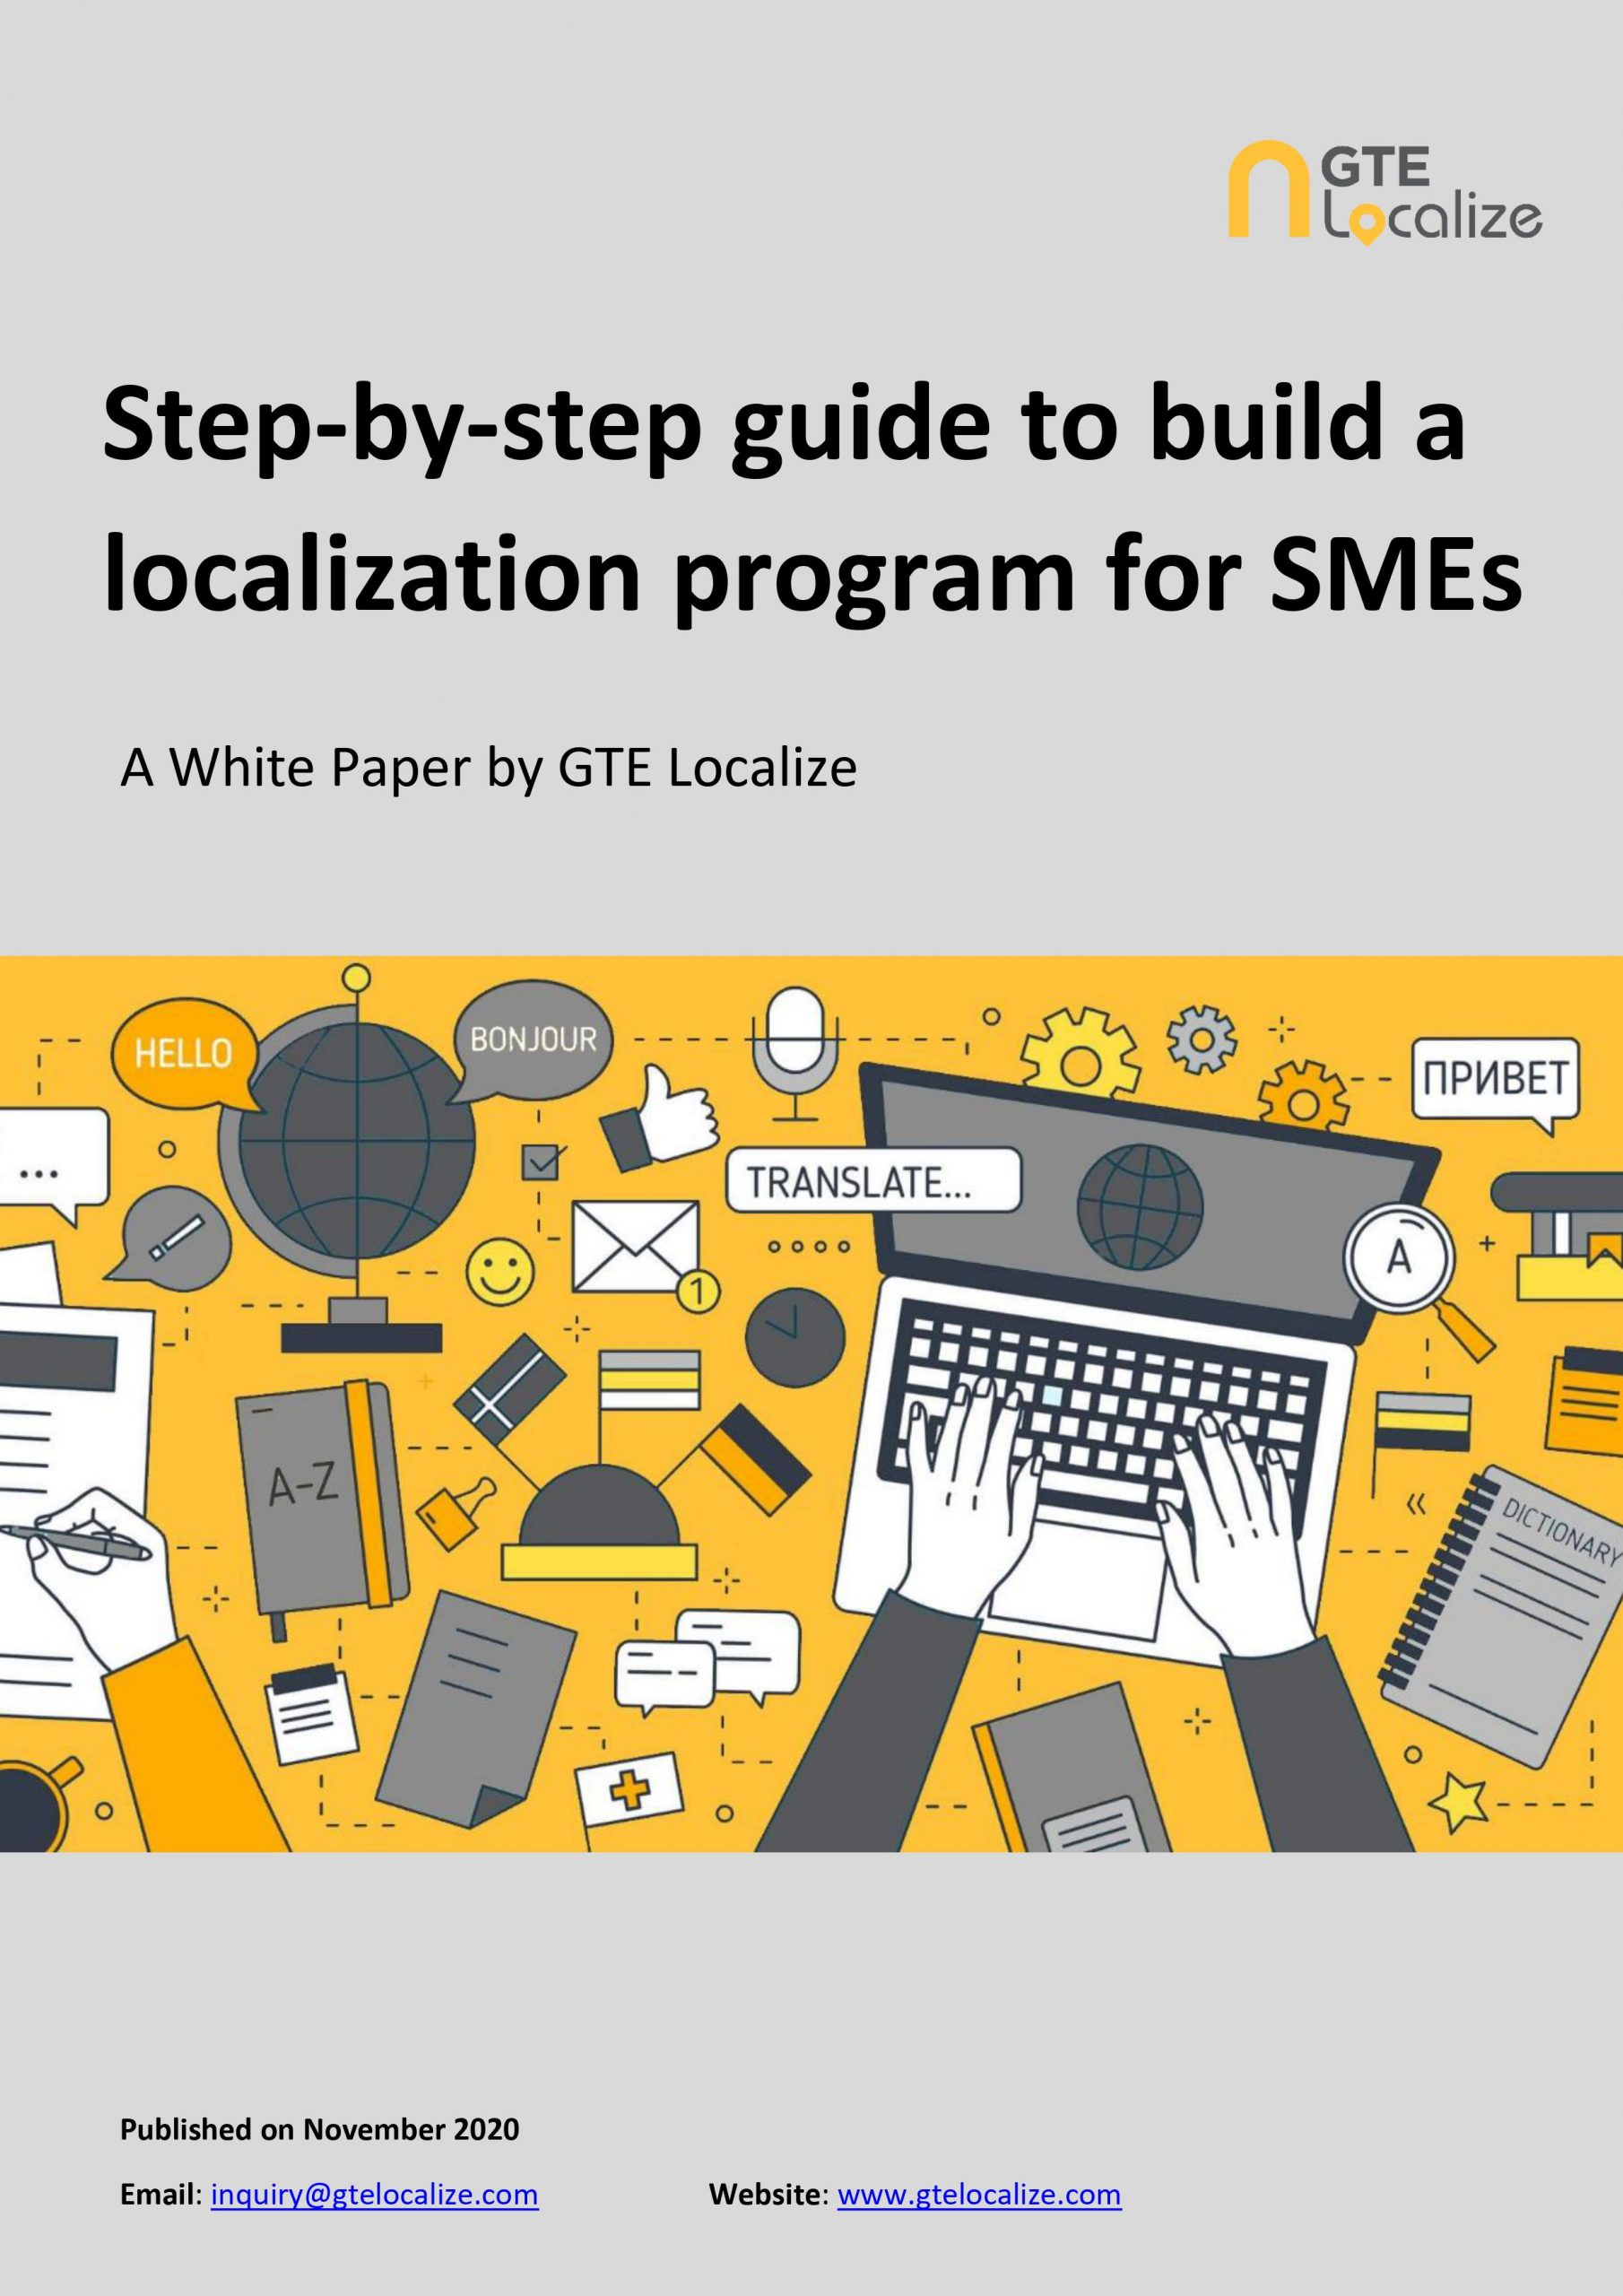 Step-by-step guide to build a localization program for SMEs